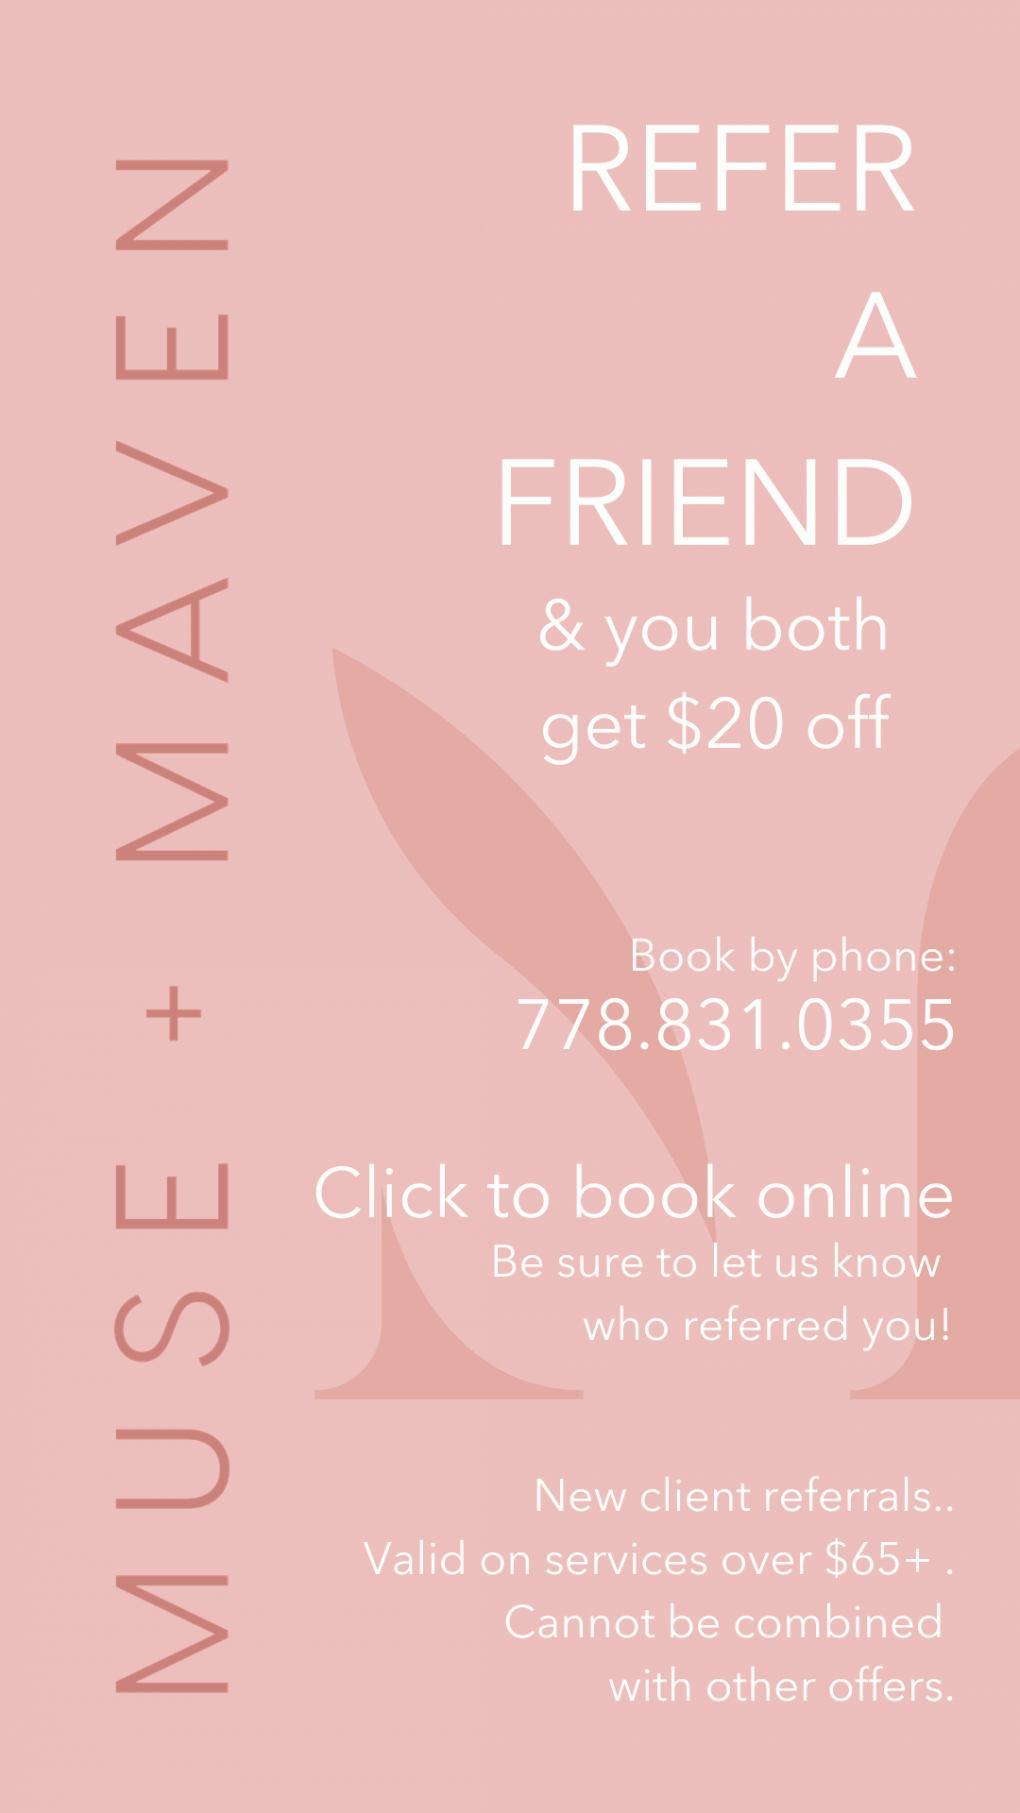 Refer a Friend Book Now Promo